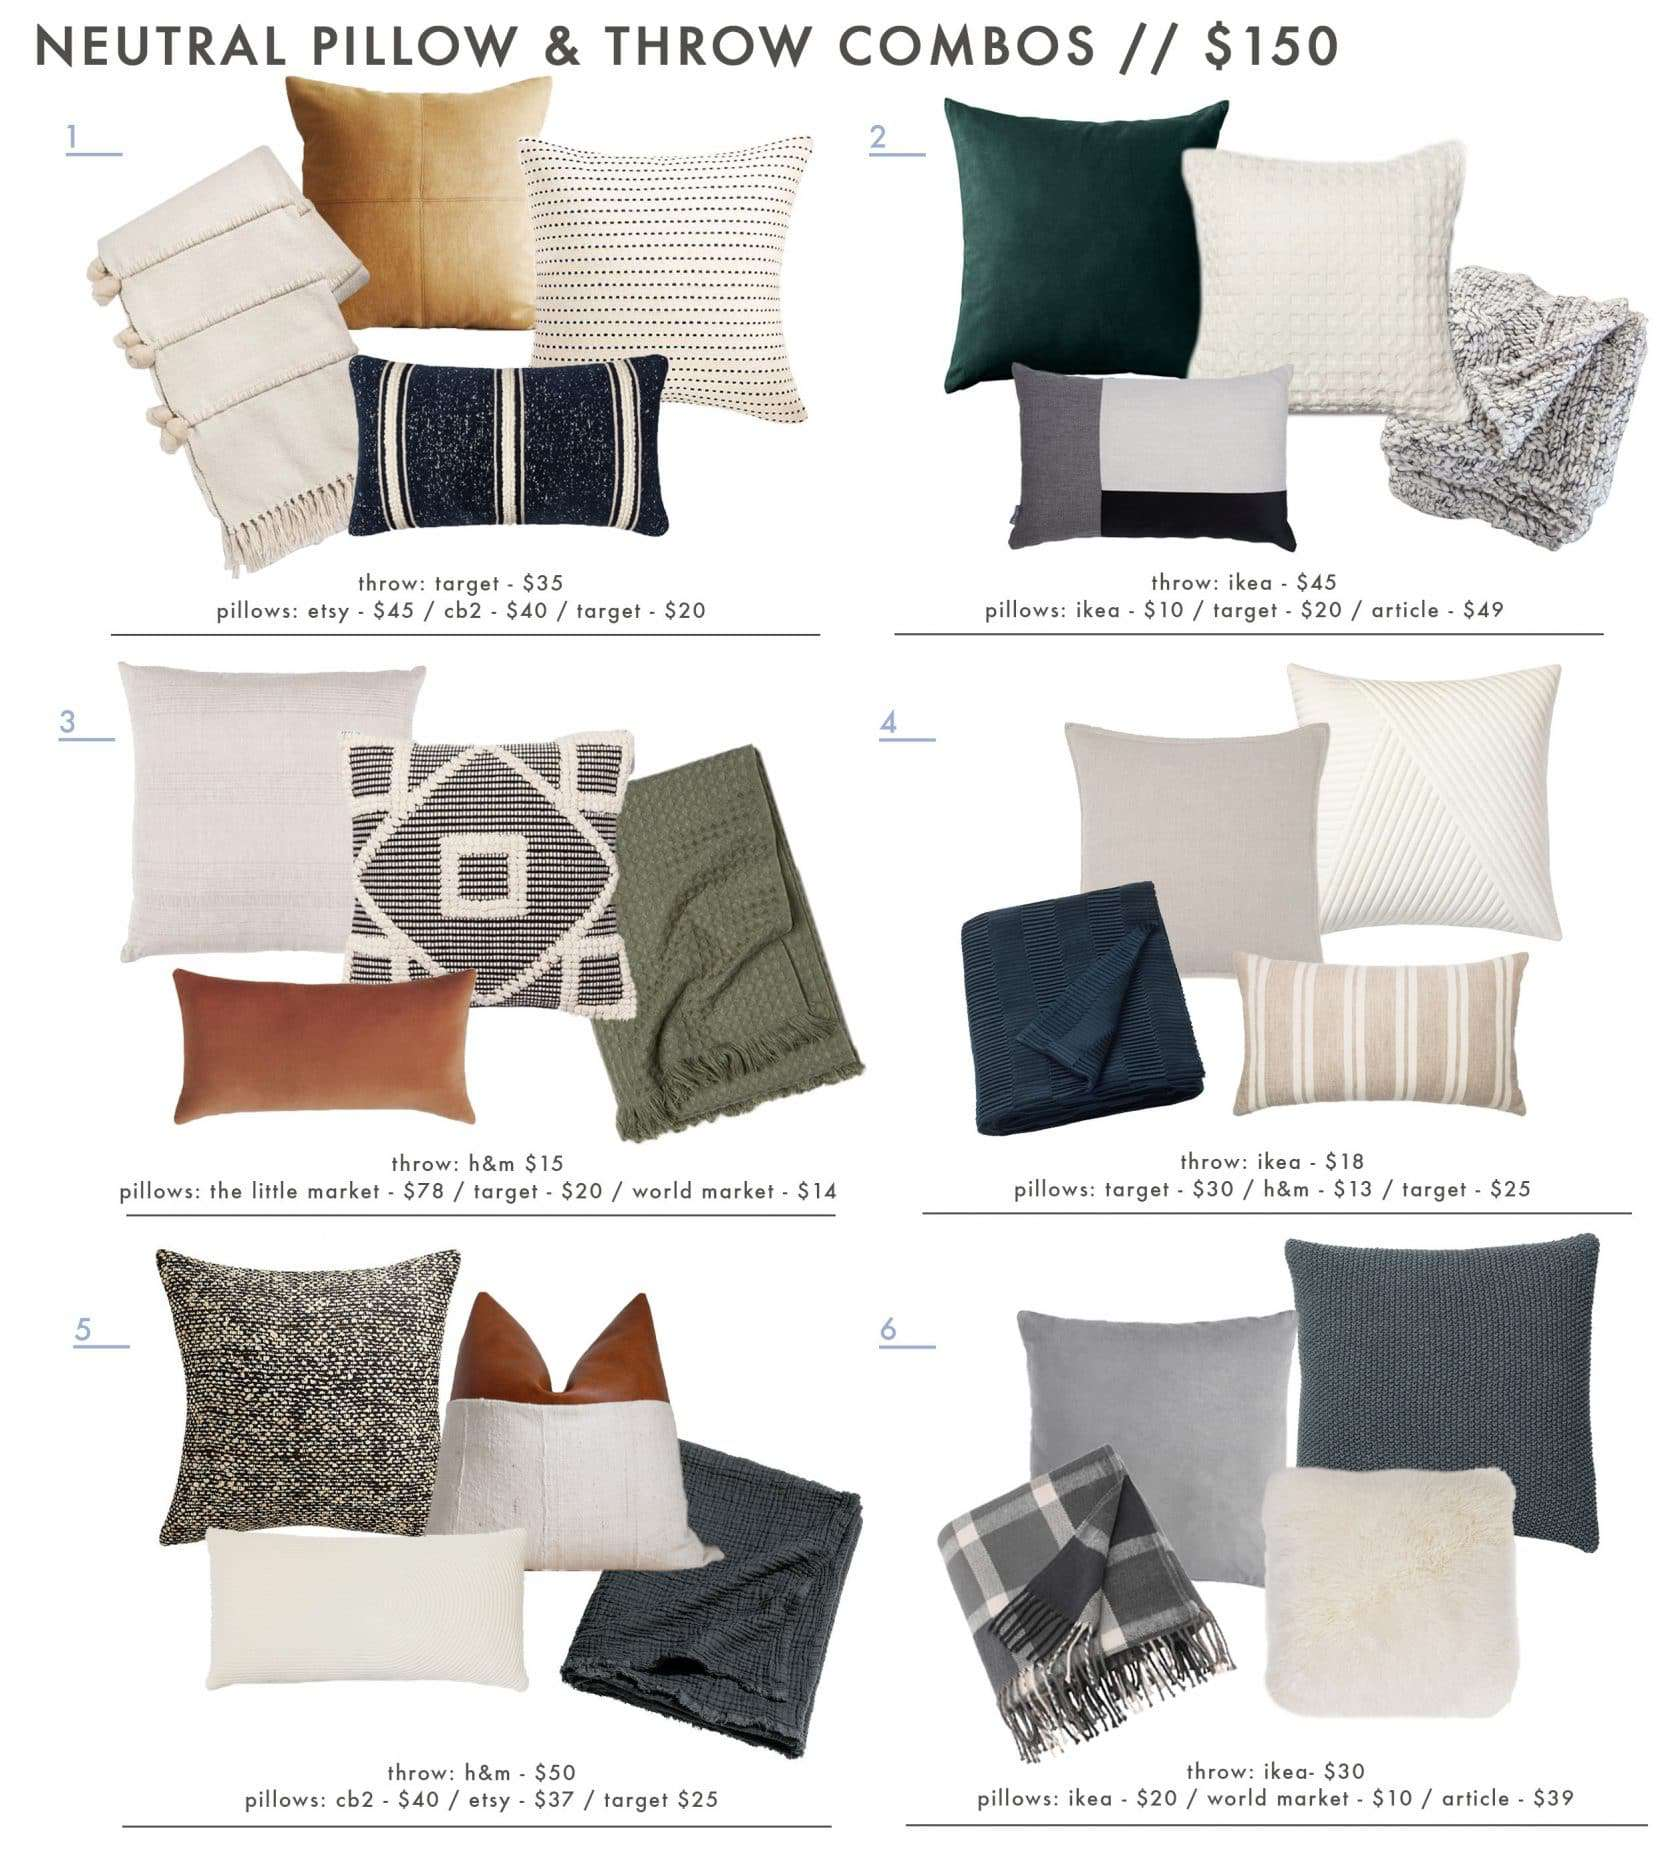 18 neutral and textured pillow combos